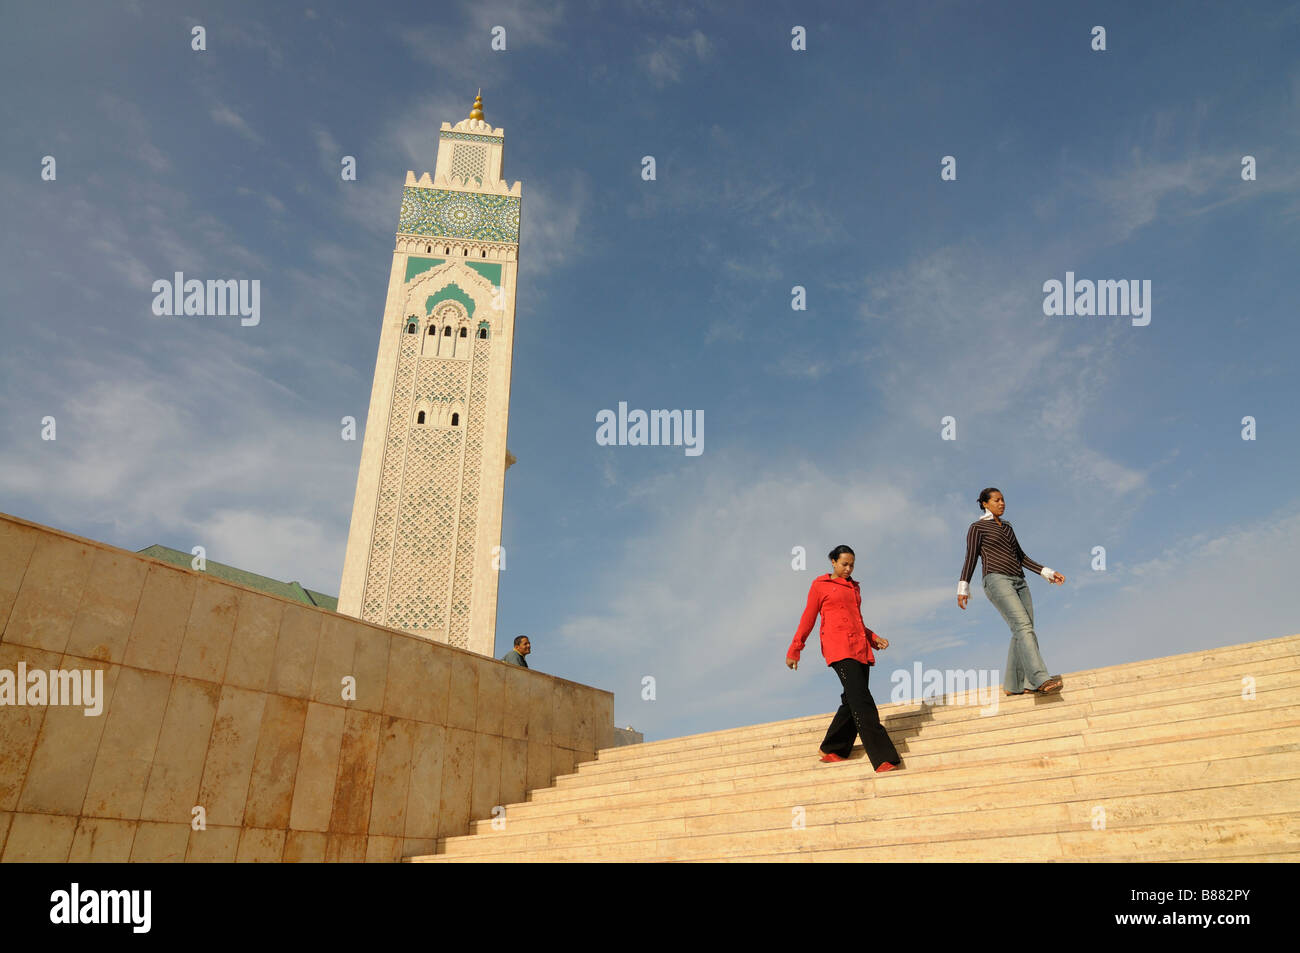 The minaret of the Mosque Hassan II in Casablanca Africa Morocco - Stock Image